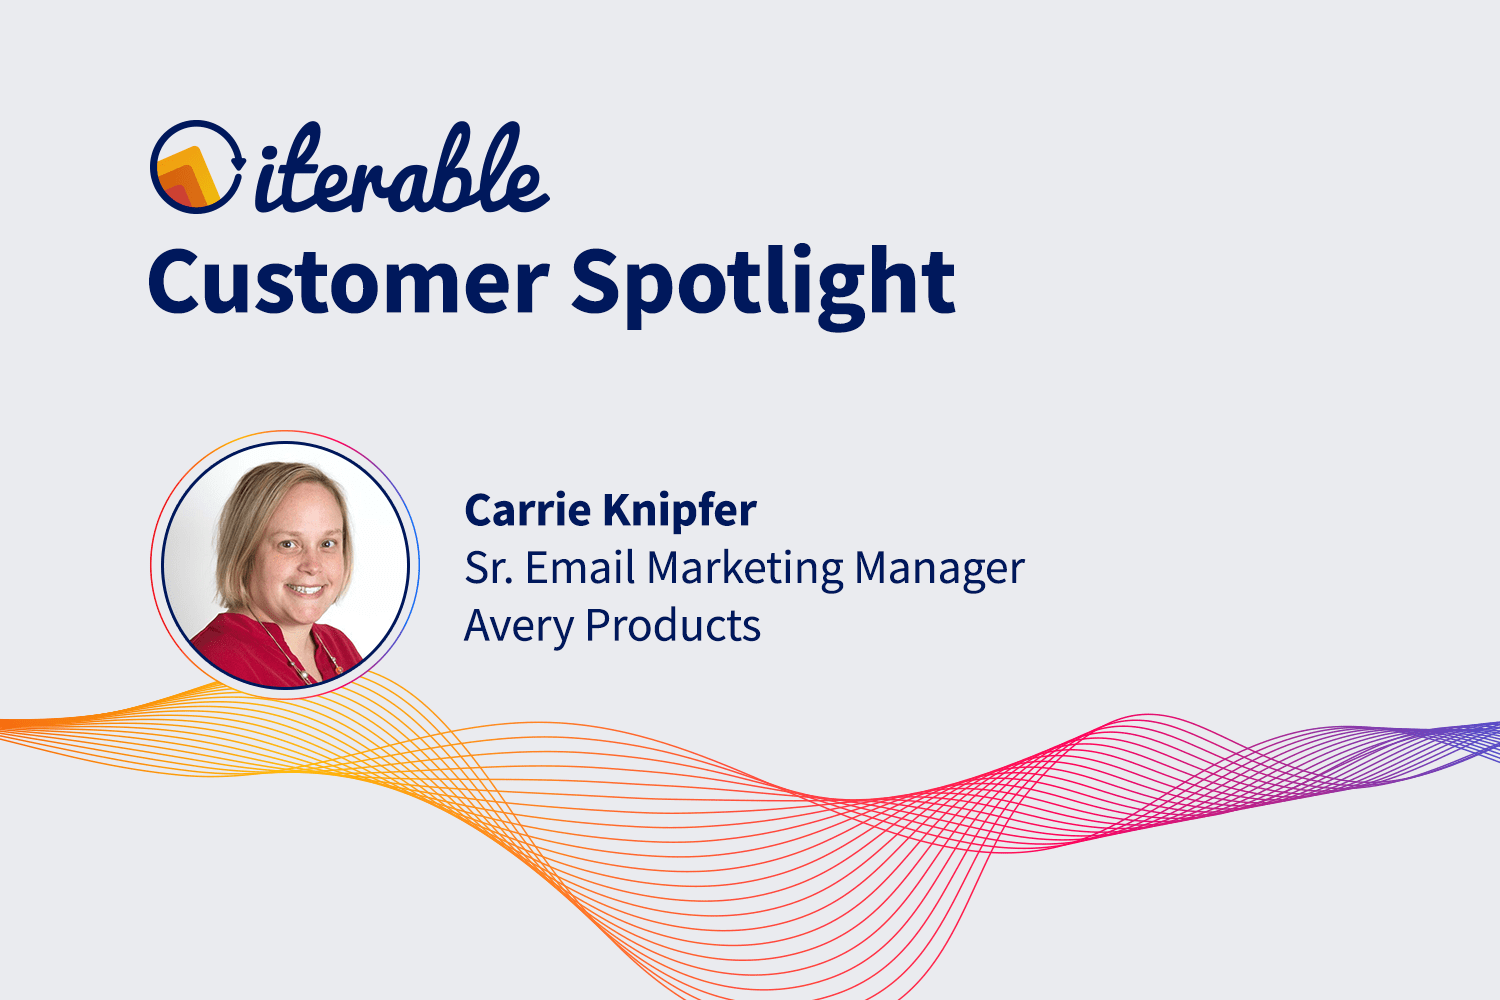 Iterable Customer Spotlight: Carrie Knipfer